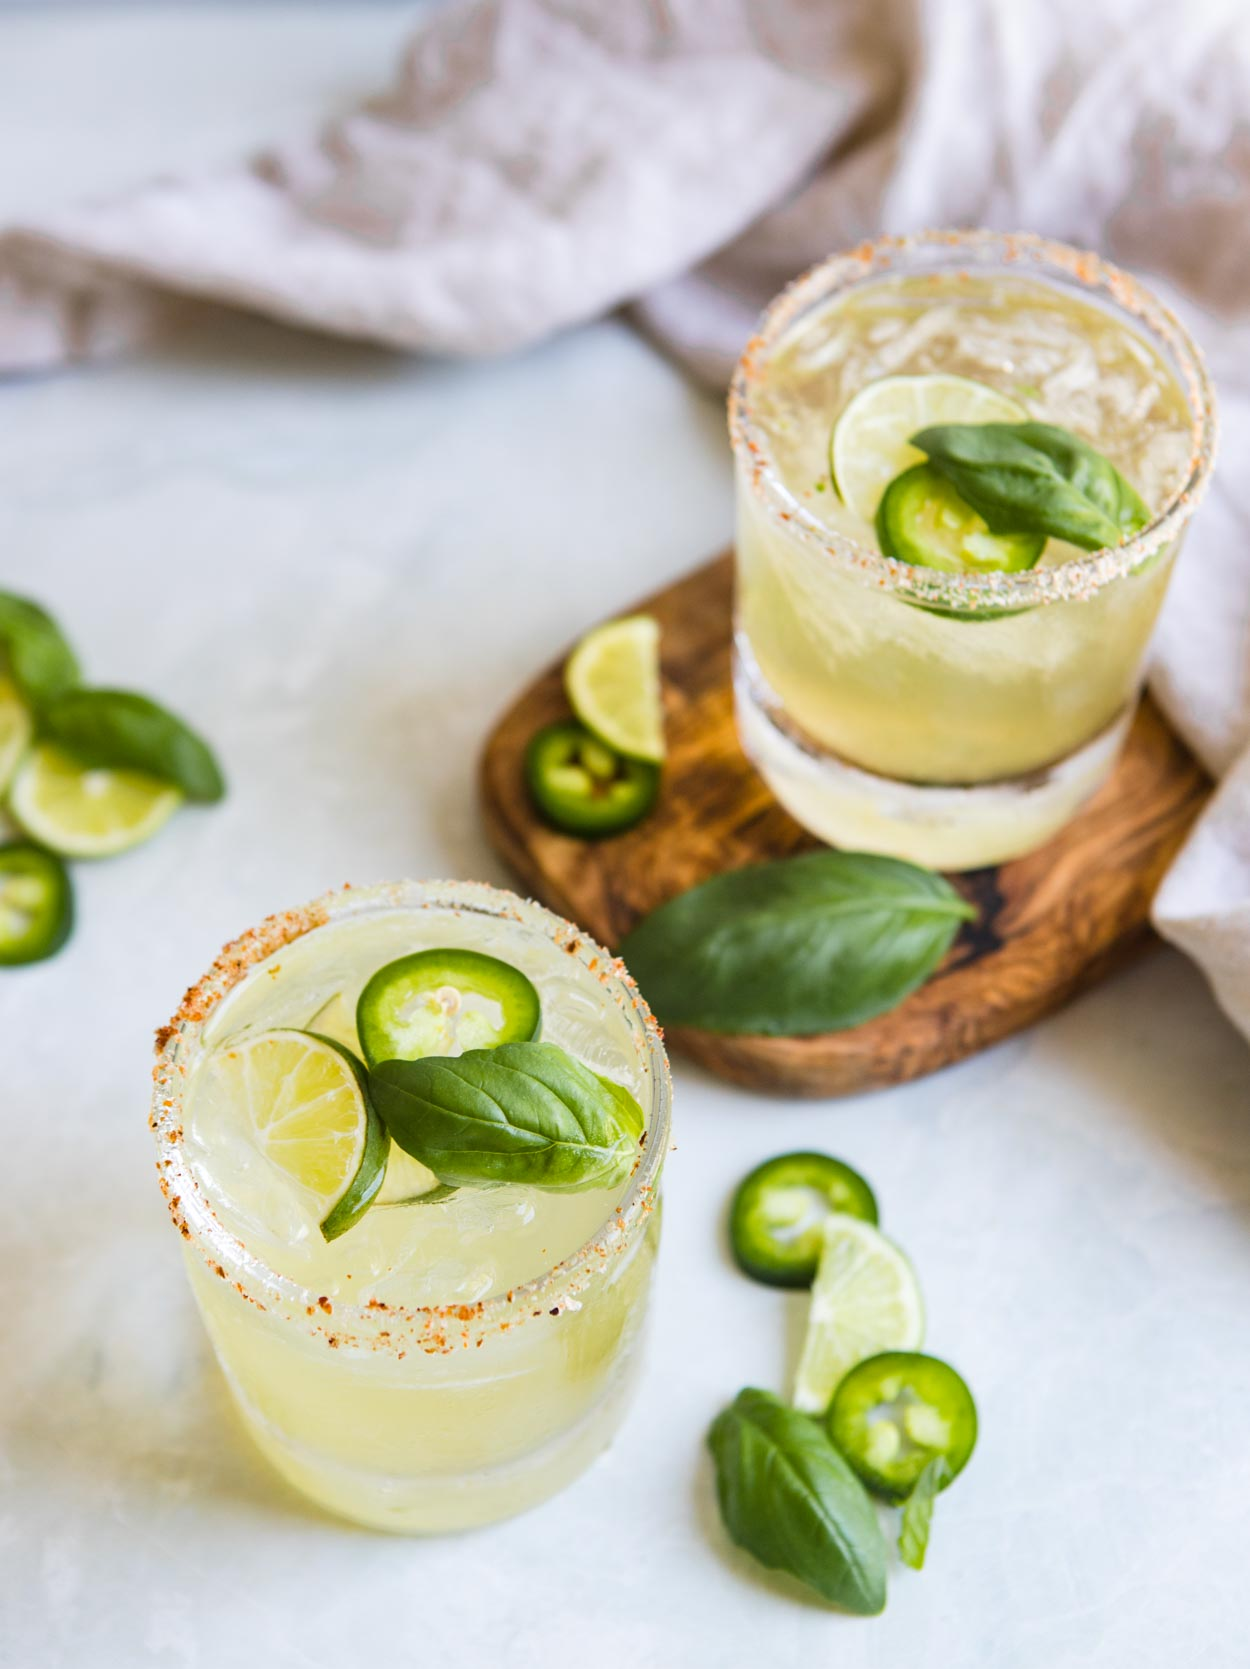 2 glasses filled with cucumber basil jalapeno margarita against a white background